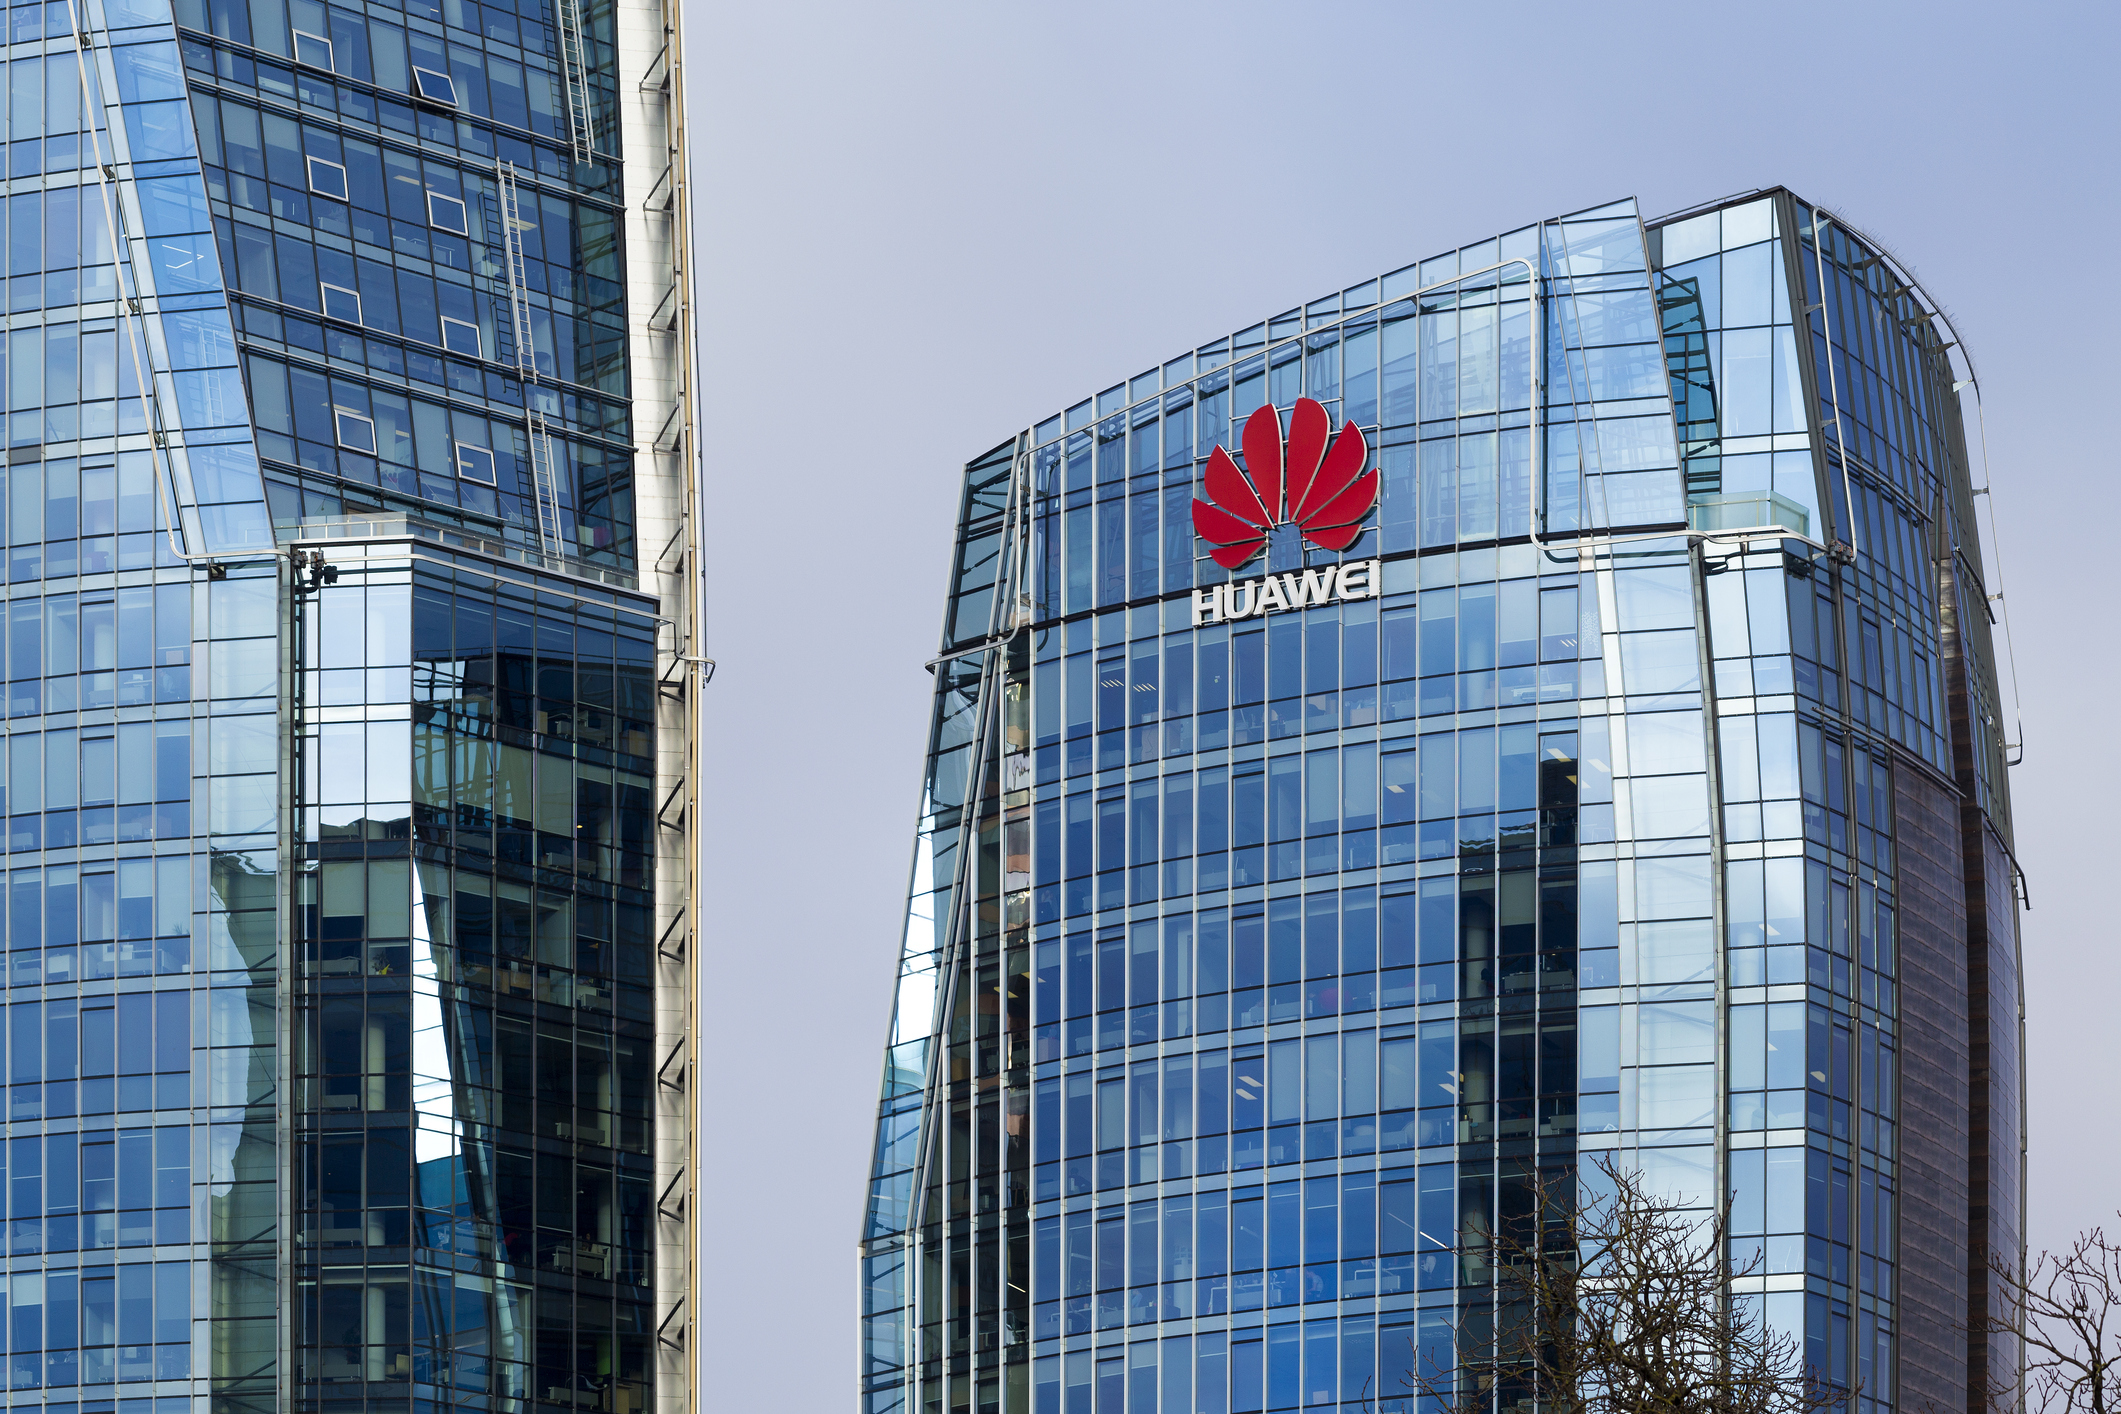 Is Huawei a national security threat? | Penn Today